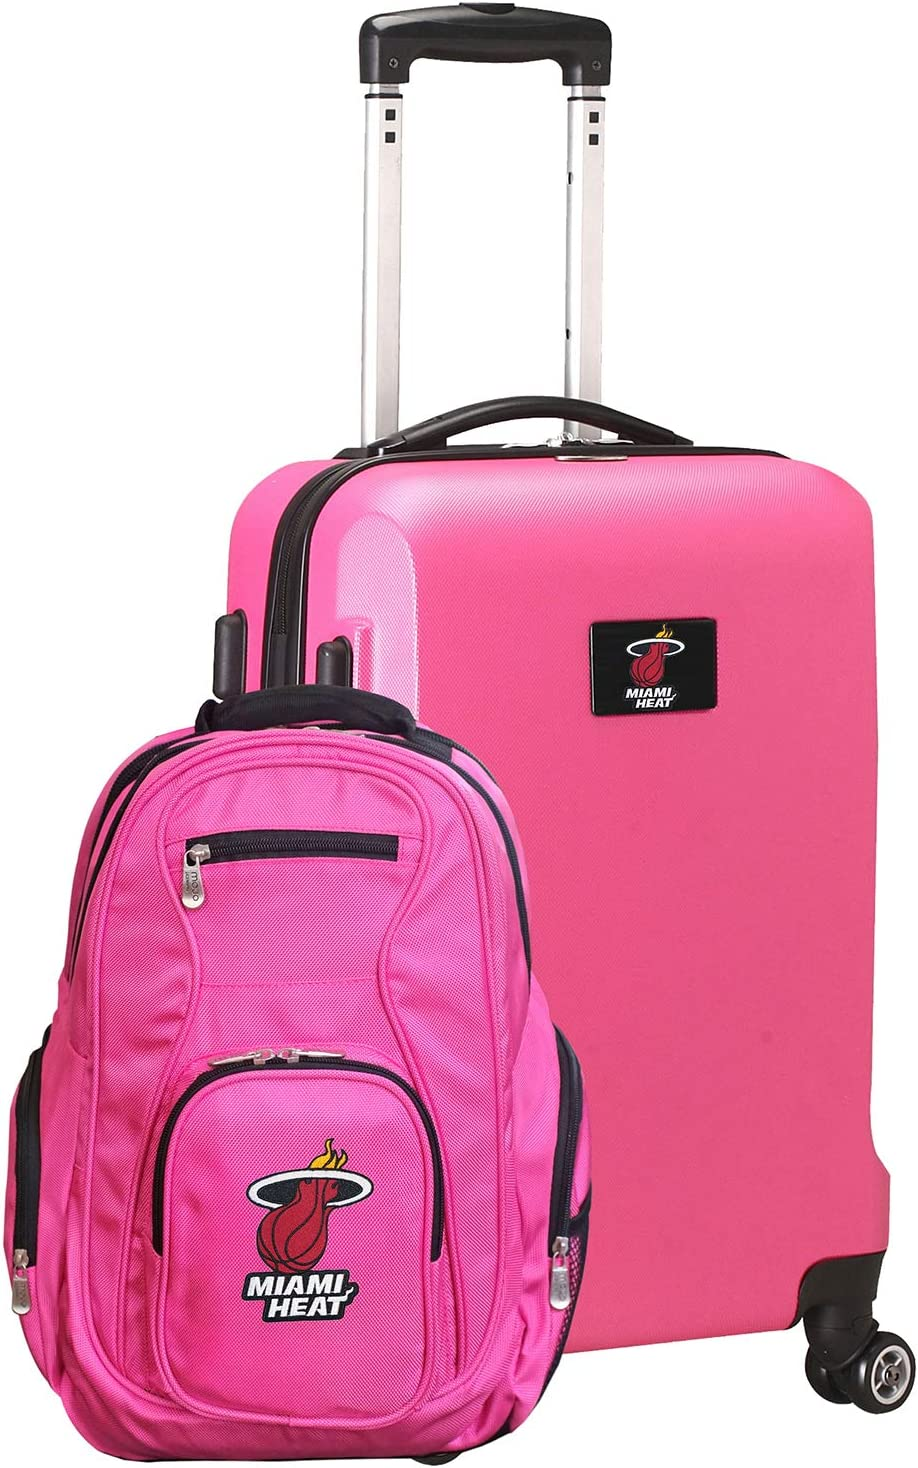 NBA L104 Deluxe 2-Piece Backpack Luggage and OFFicial shop Pink Spring new work Set Carry-On